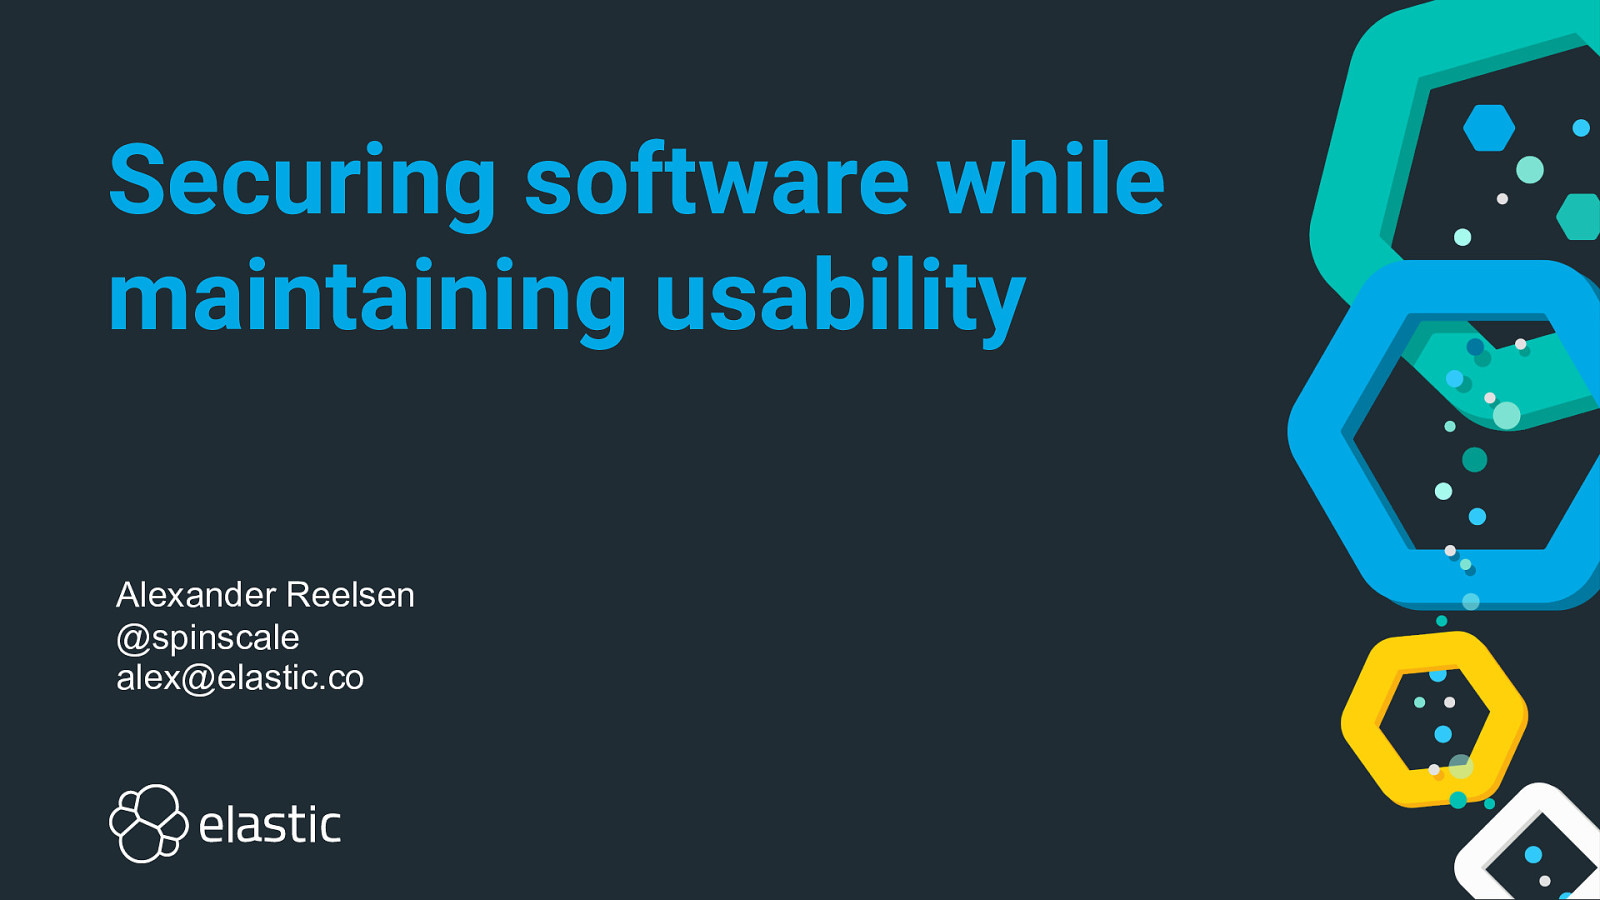 Securing software while maintaining usability